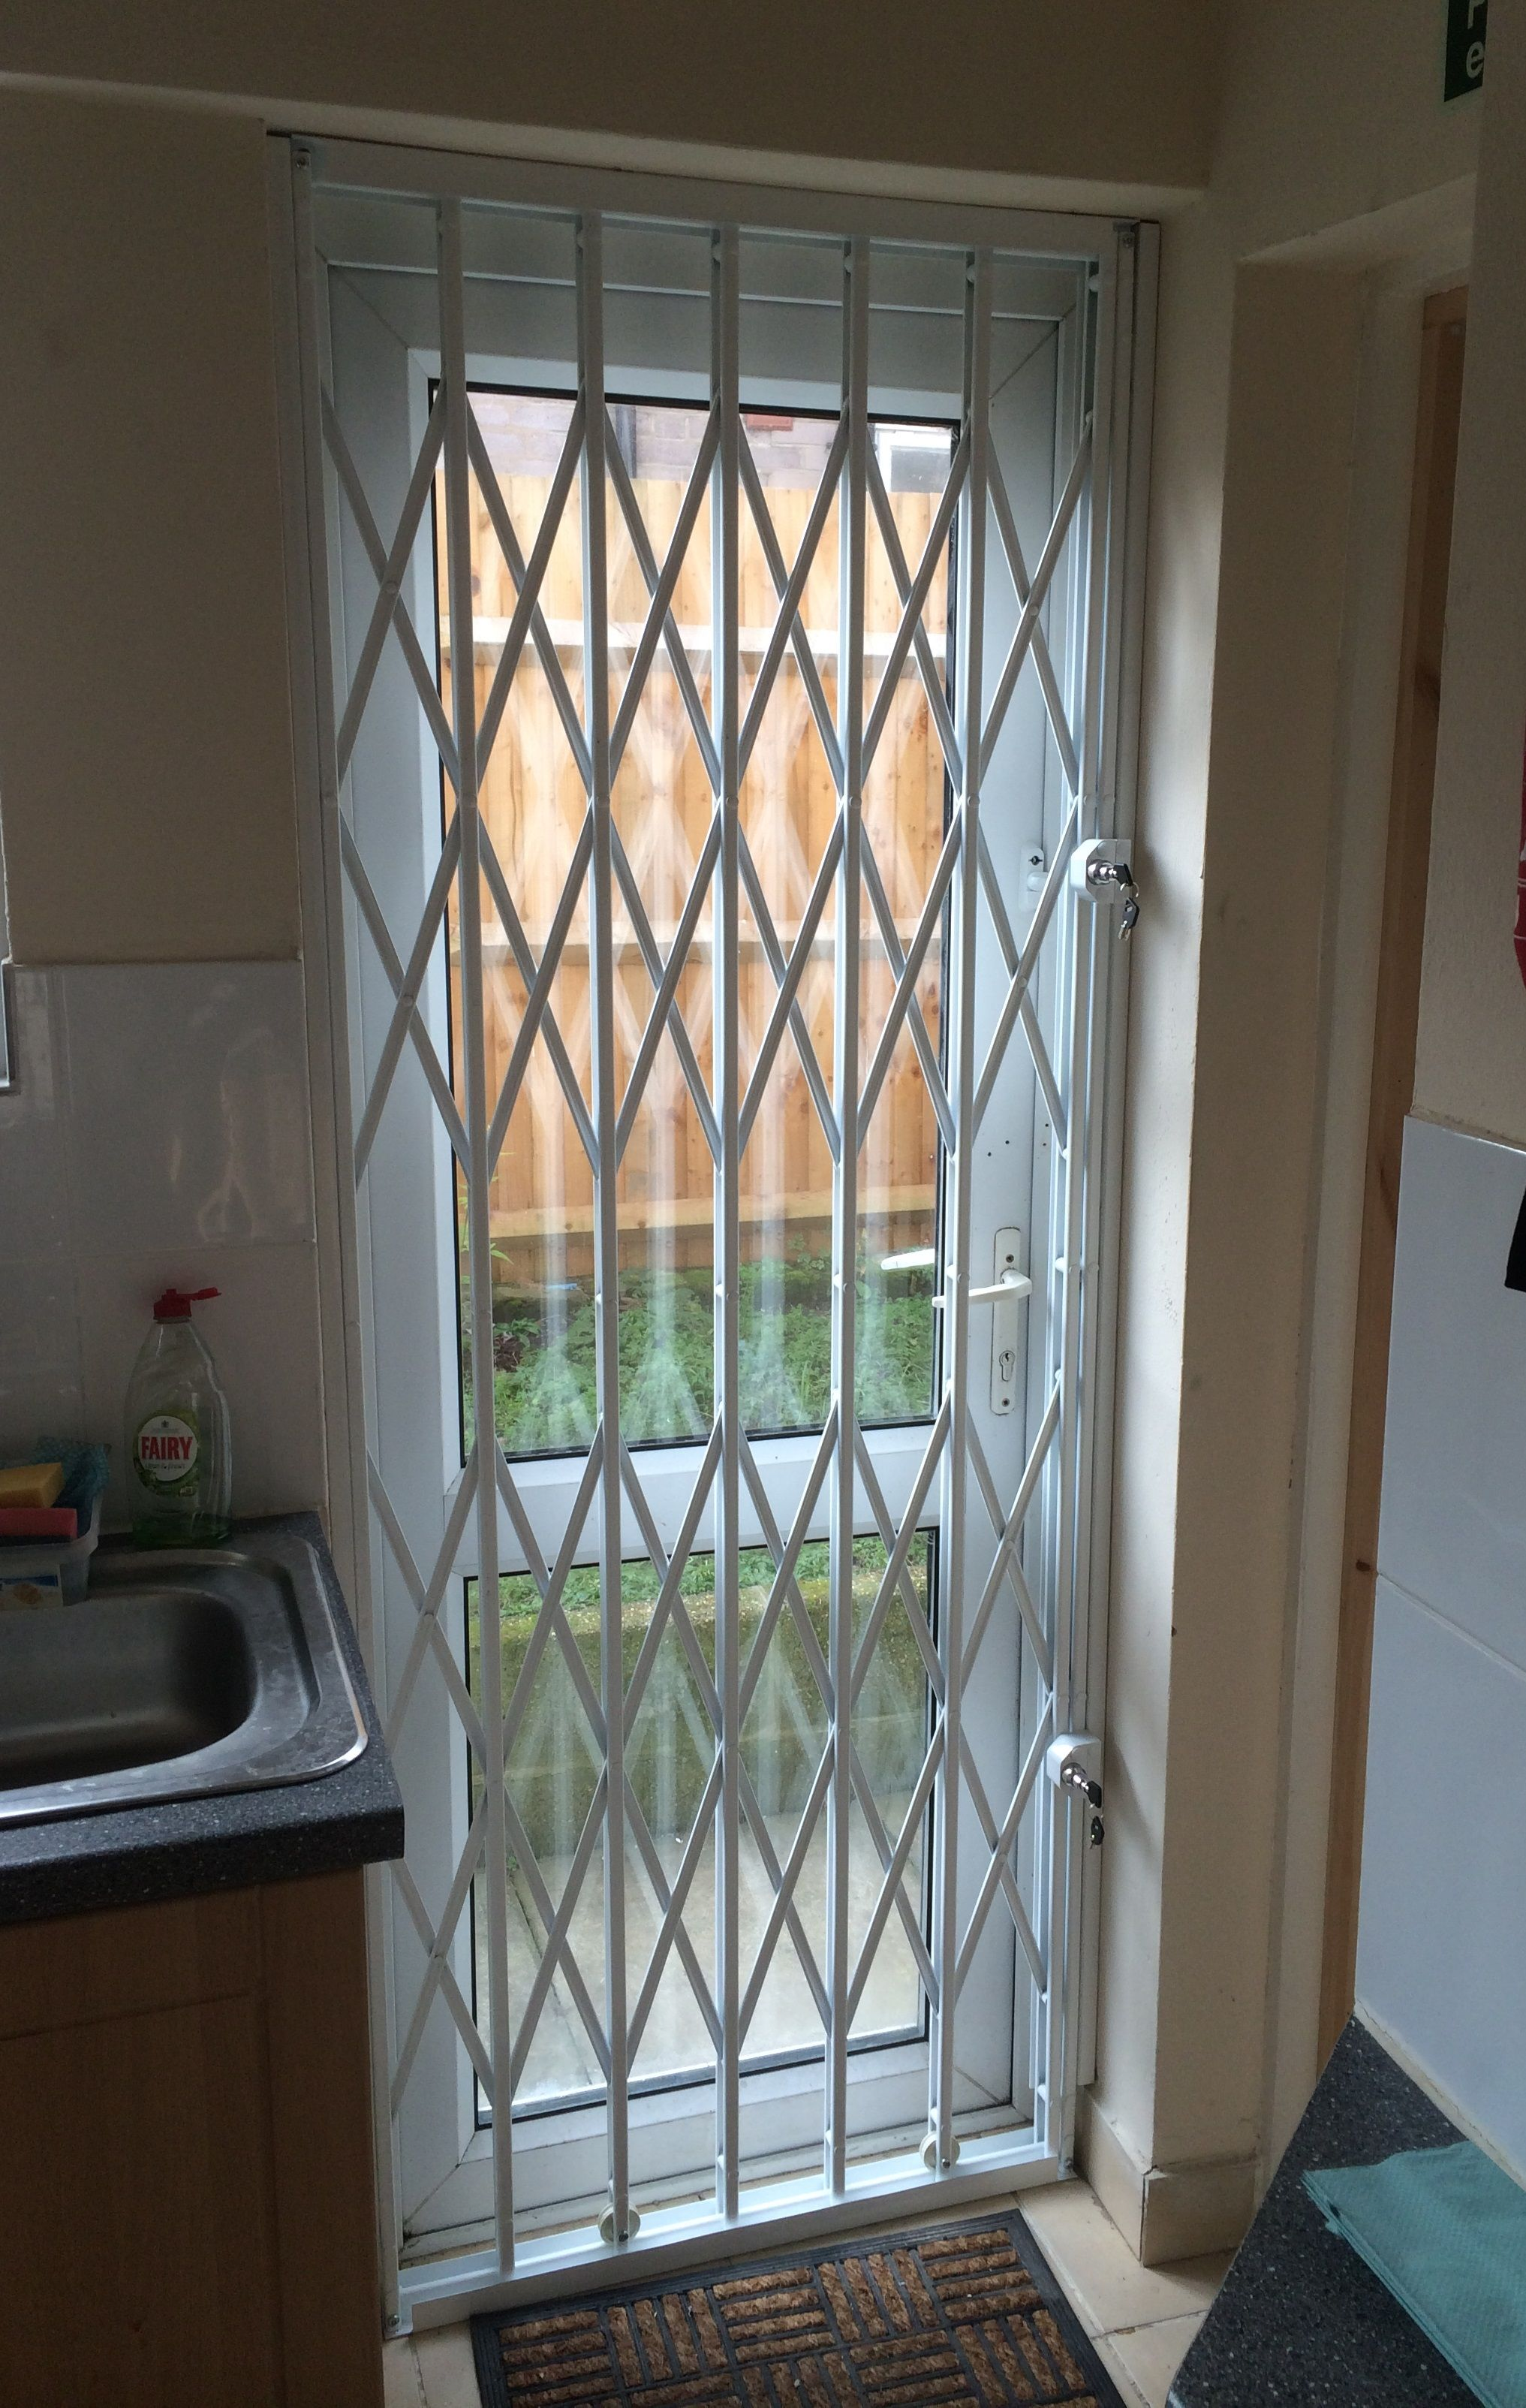 Rsg1000 Retractable Security Grille Fitted To A Kitchen